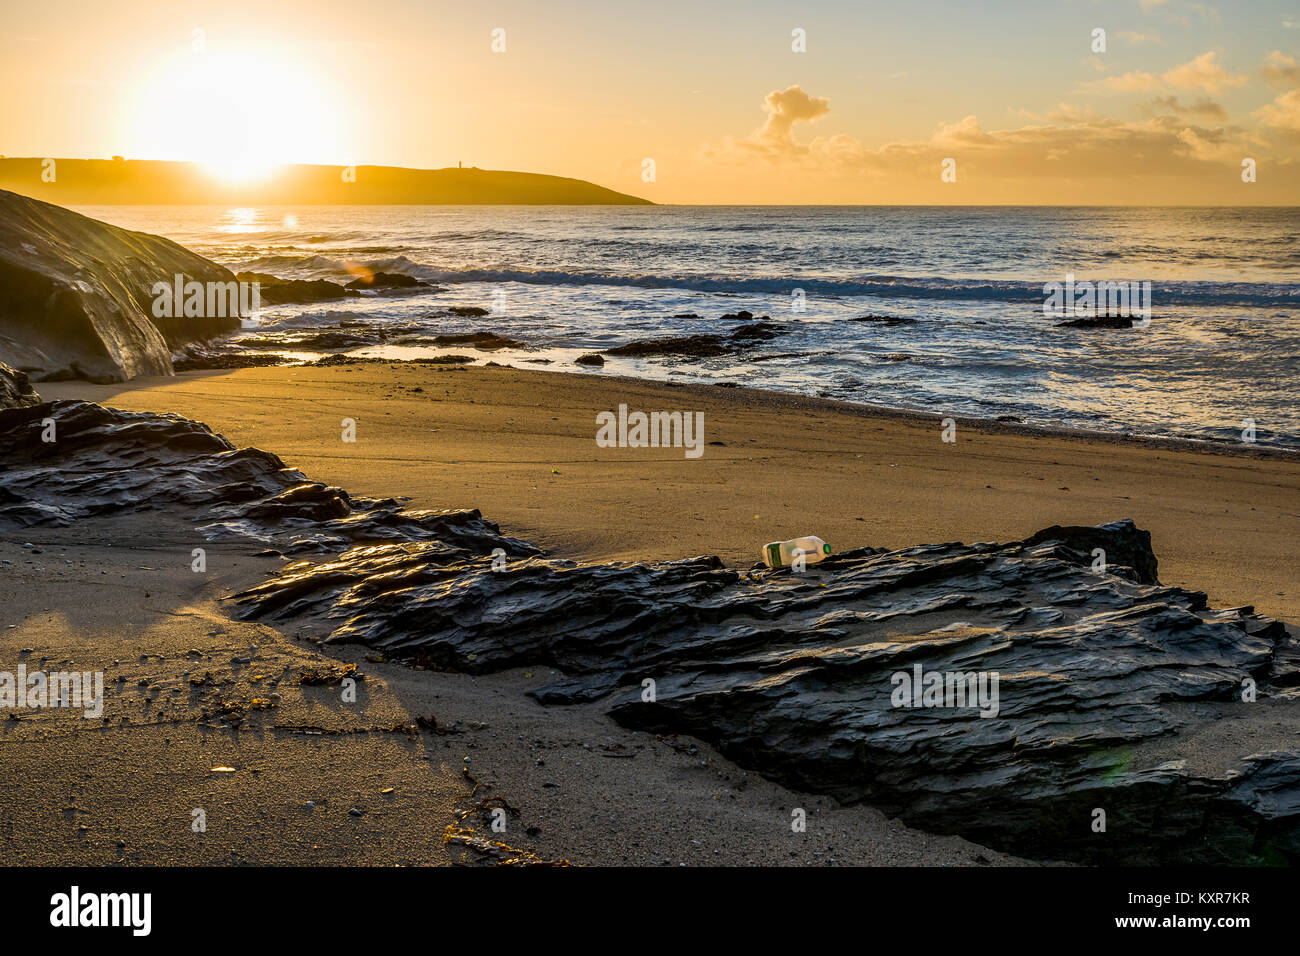 Spit Beach, St Austell Bay, Cornwall, UK. 10/01/2018, sunrise and shortly after. A discarded milk bottle faintly - Stock Image